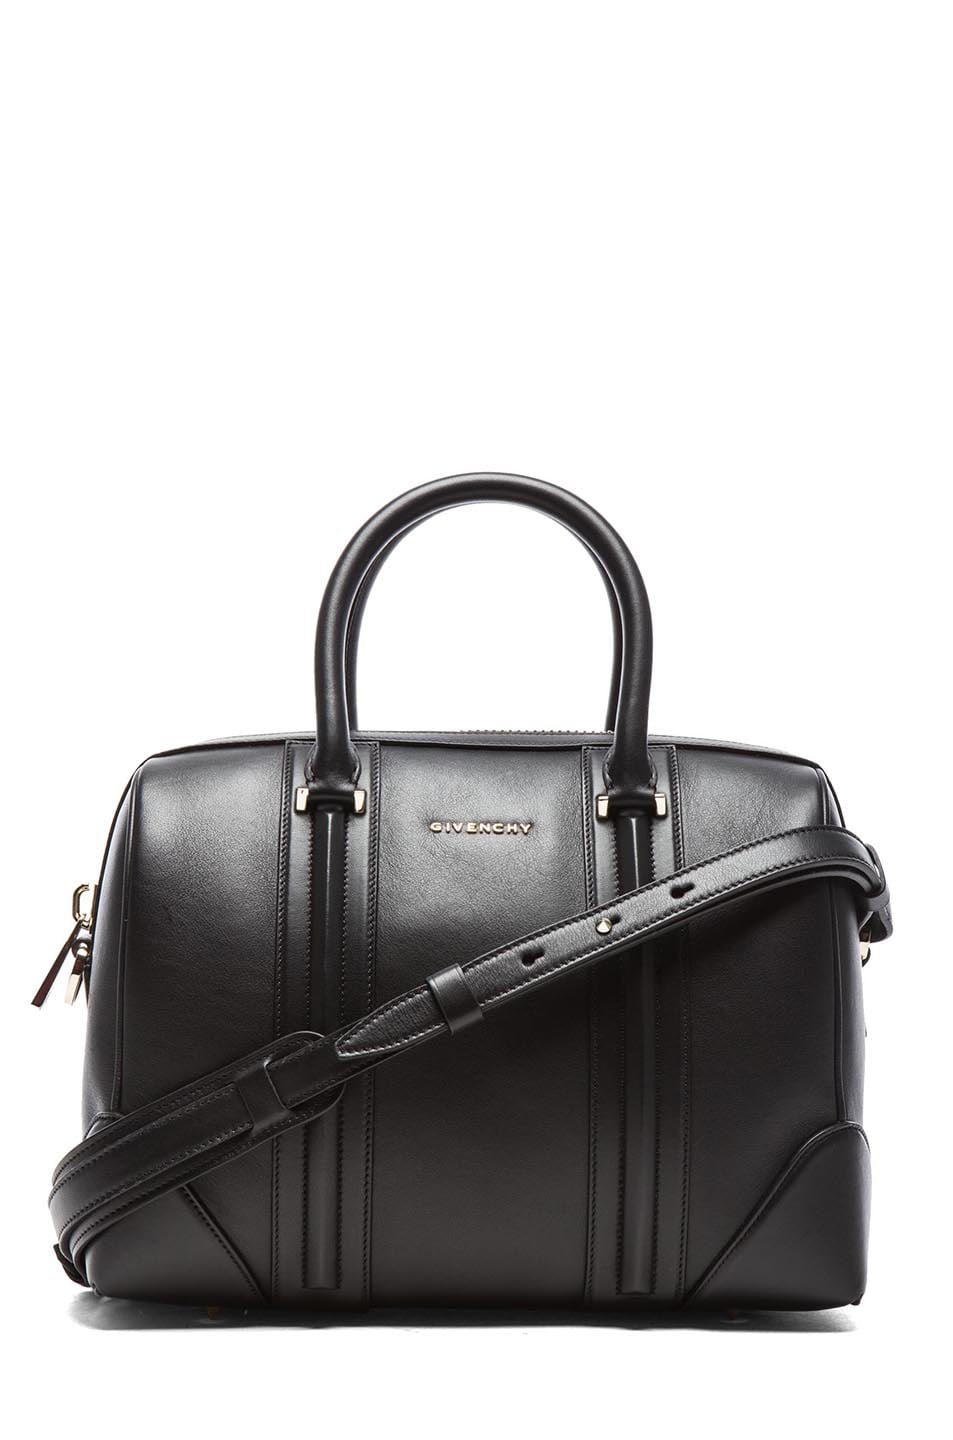 Image 1 of GIVENCHY Medium Lambskin Lucrezia Bag in Black